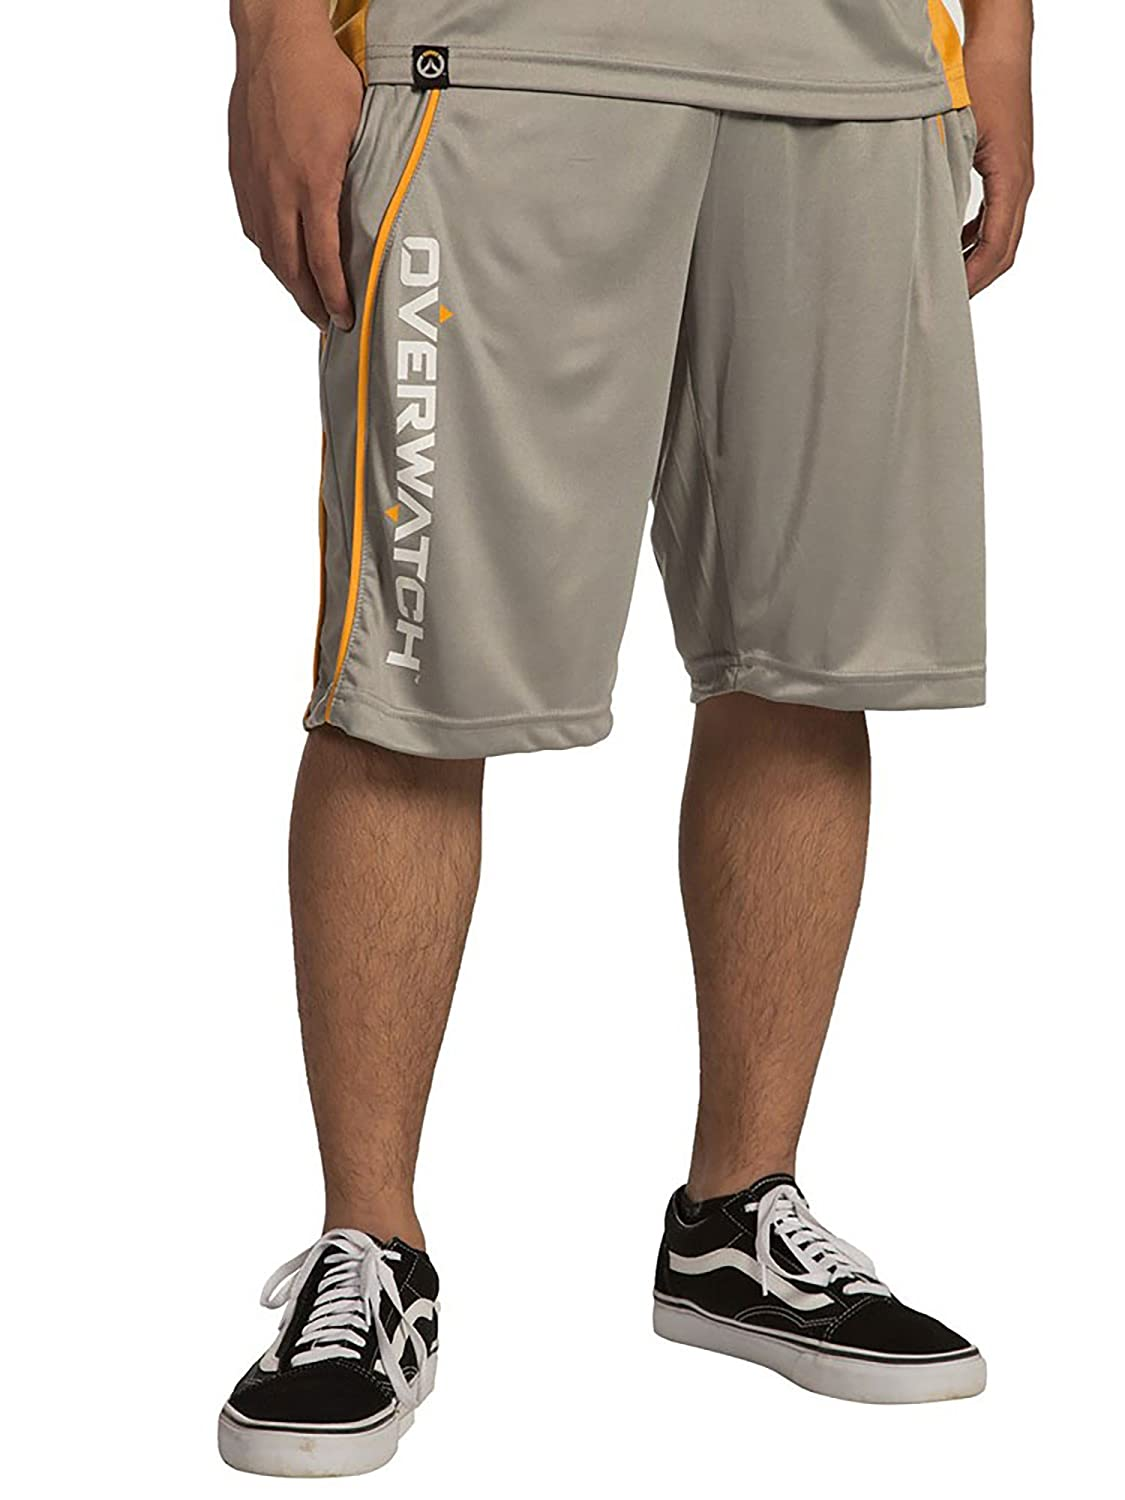 JINX Overwatch Men's Performance Esports Player Shorts BLOW-06440SH